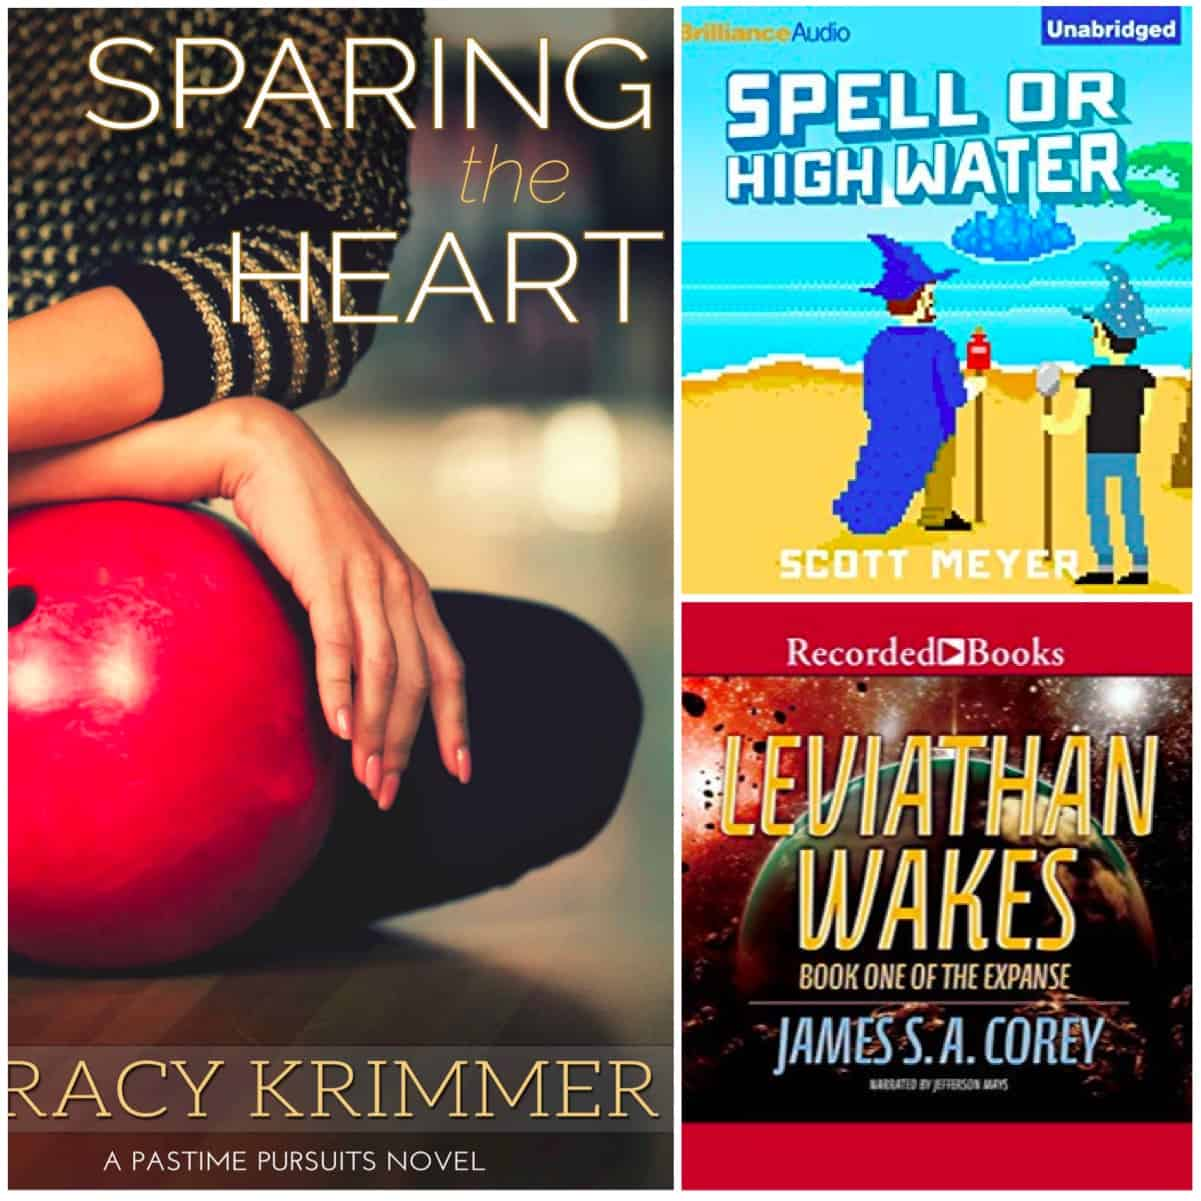 James S. A. Corey's The Expanse Series, another book in the Magic 2.0 series, and SPARING THE HEART by Tracy Krimmer.